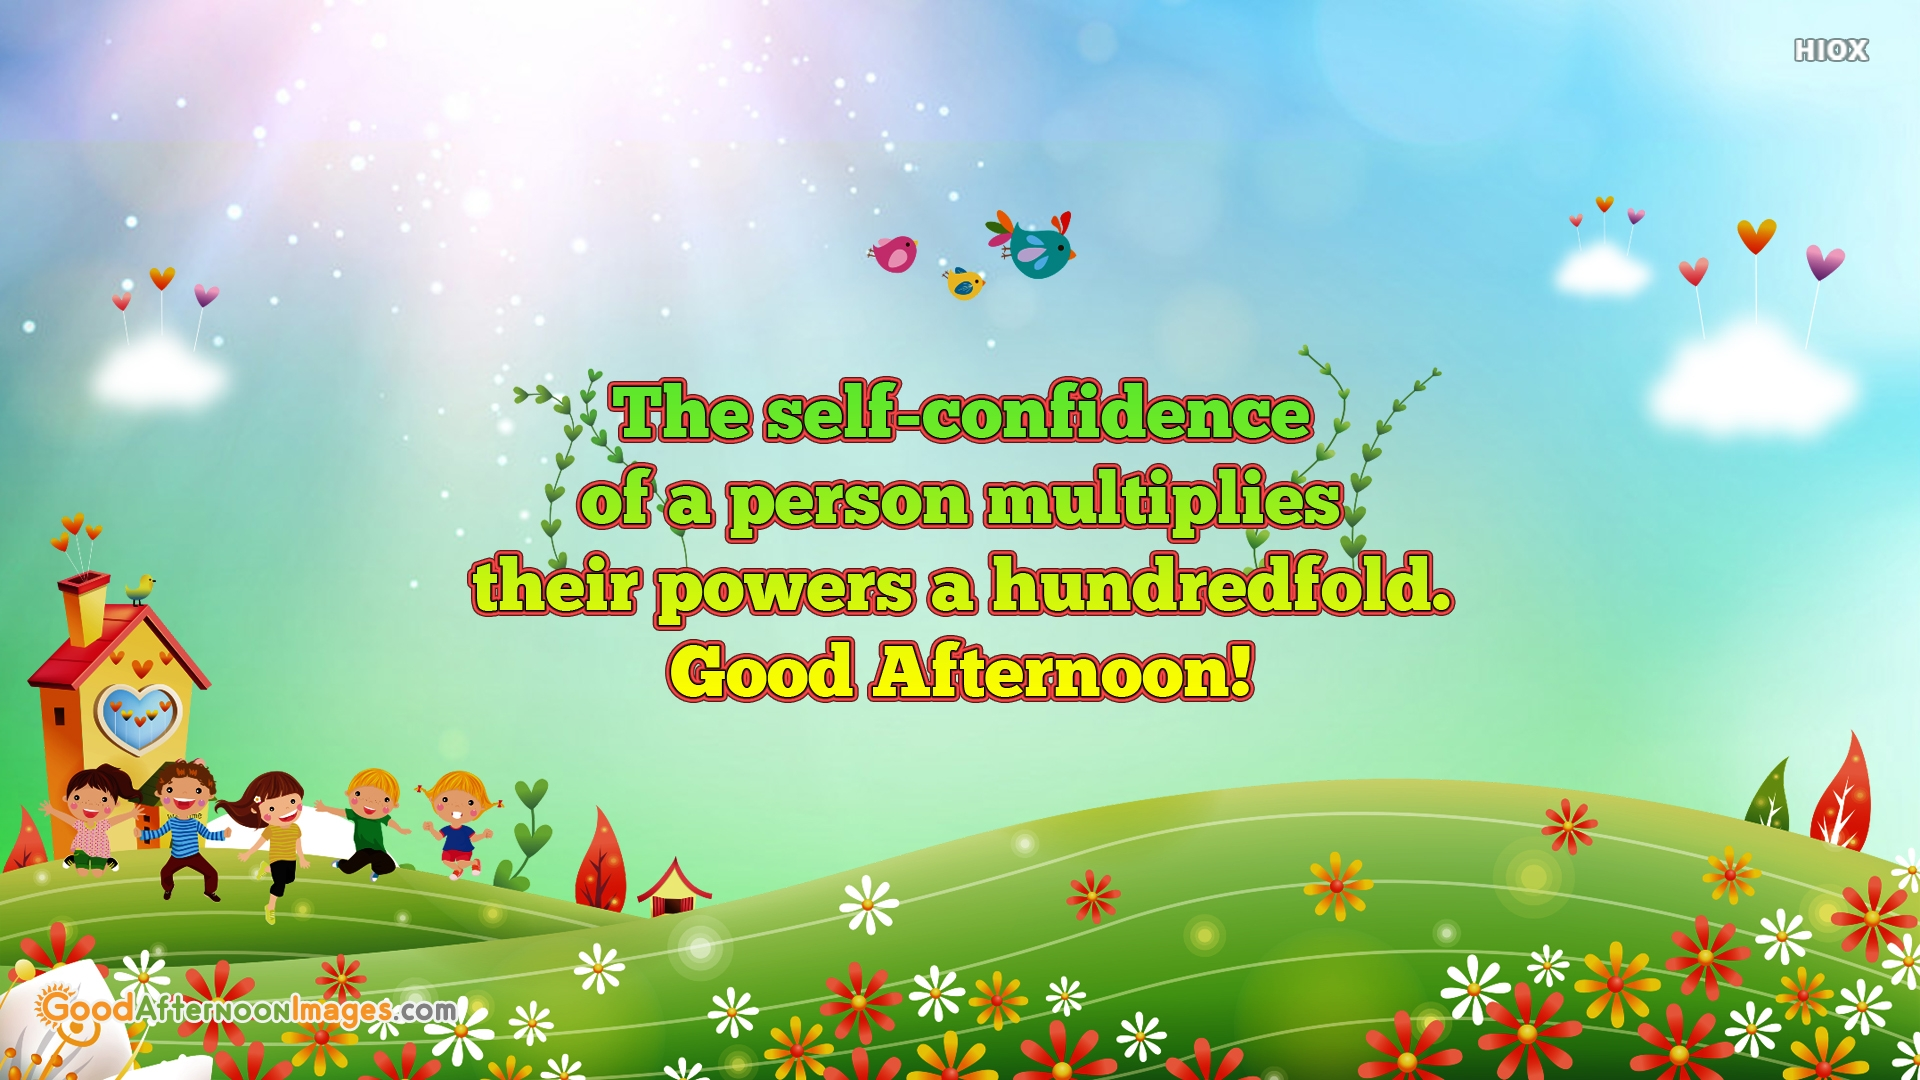 The Self-confidence Of A Person Multiplies Their Powers A Hundredfold. Good Afternoon!